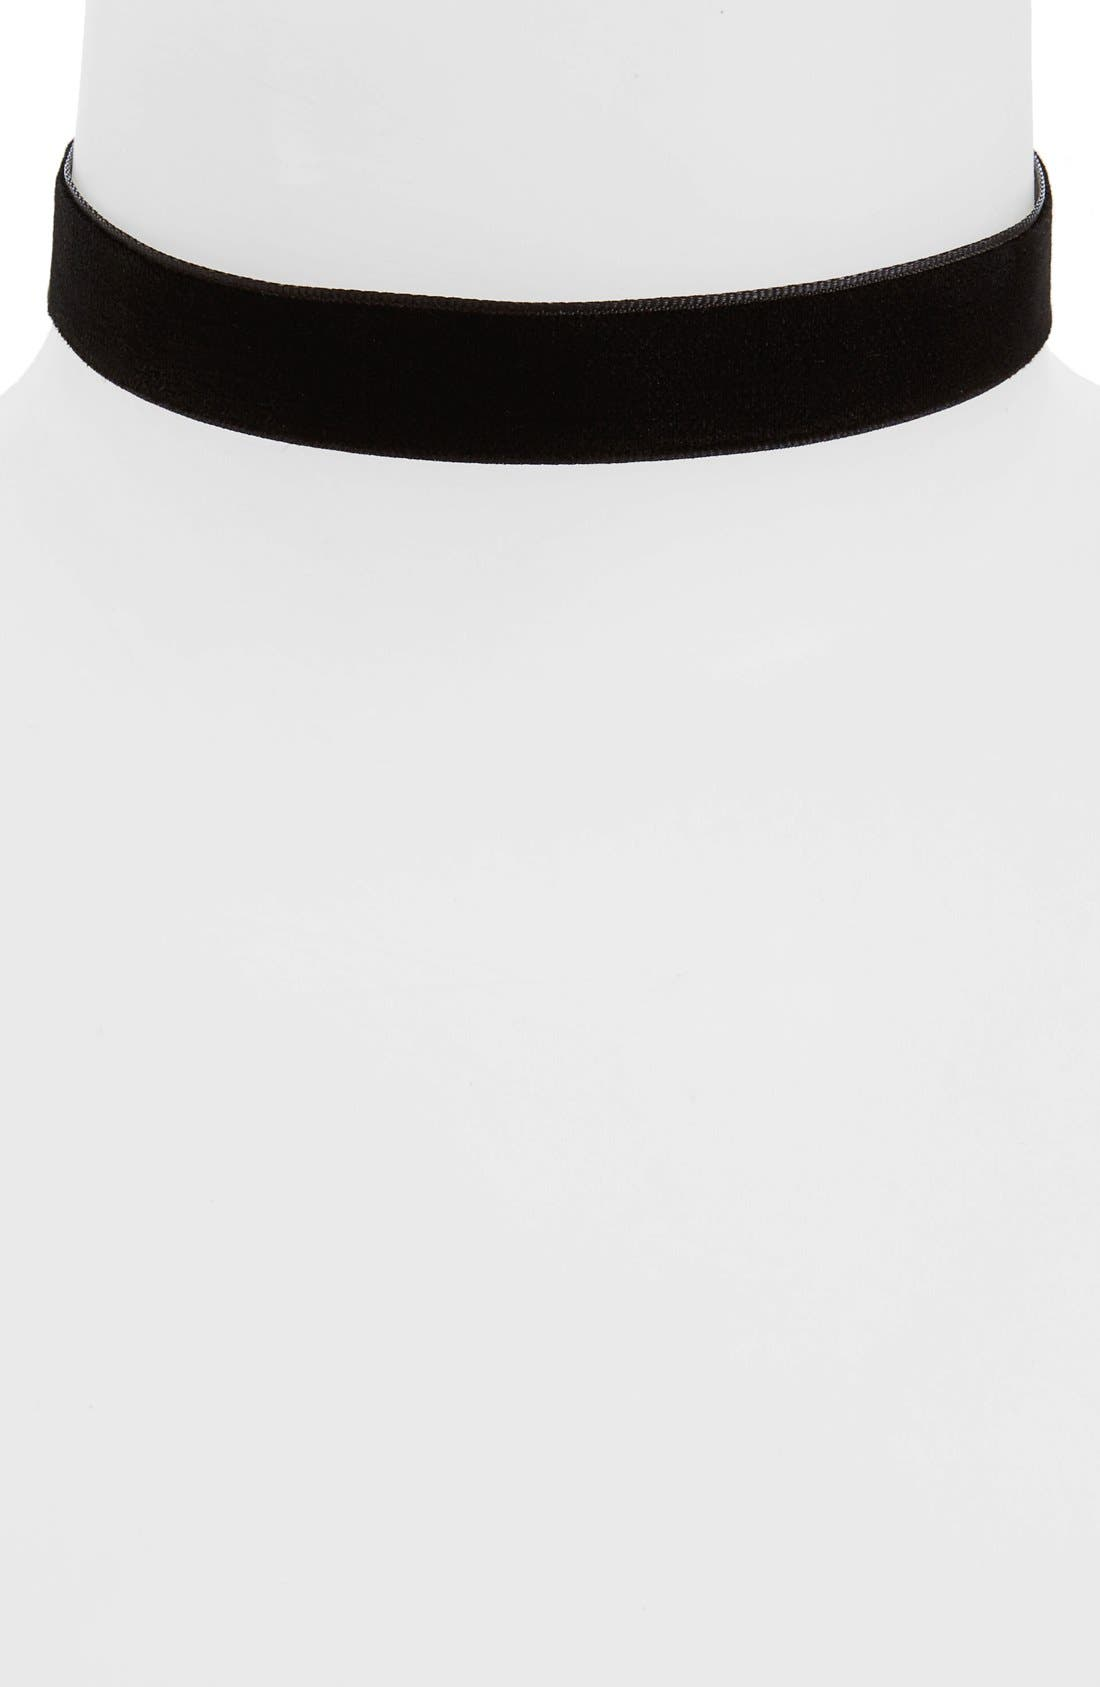 Velvet Choker,                         Main,                         color, Black